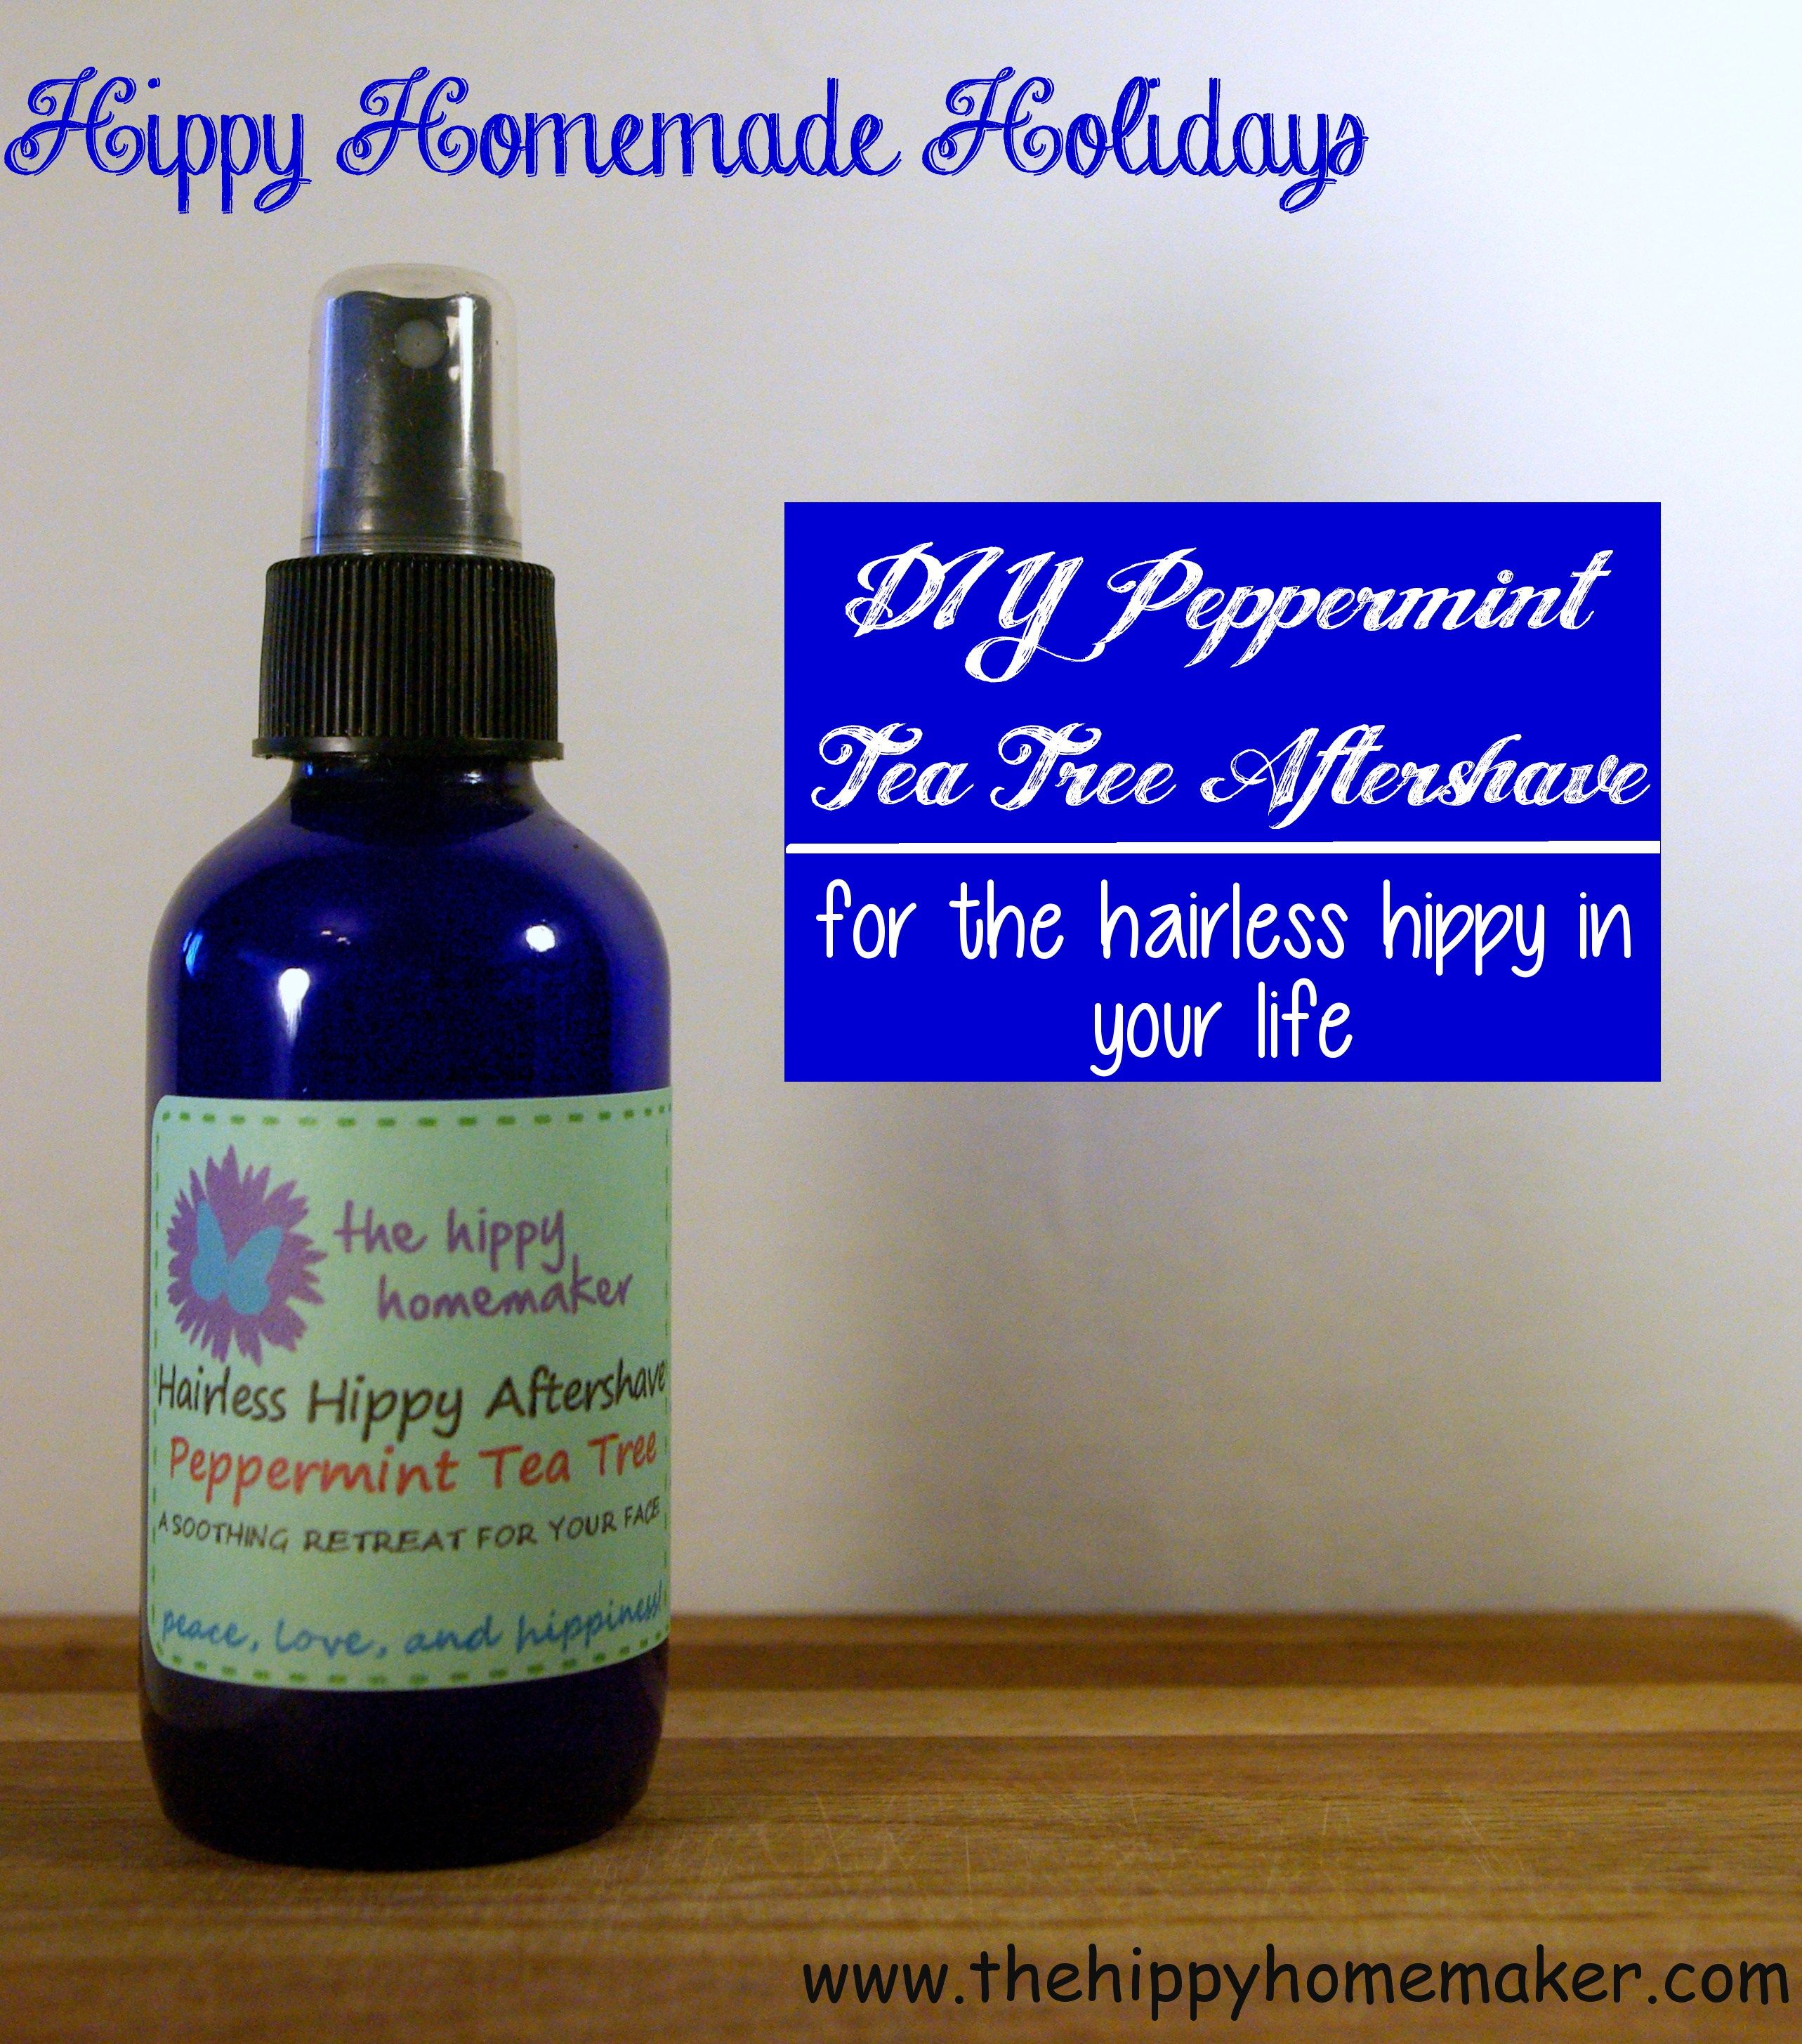 Homemade Peppermint Tea Tree Aftershave For The Hairless Hippy In